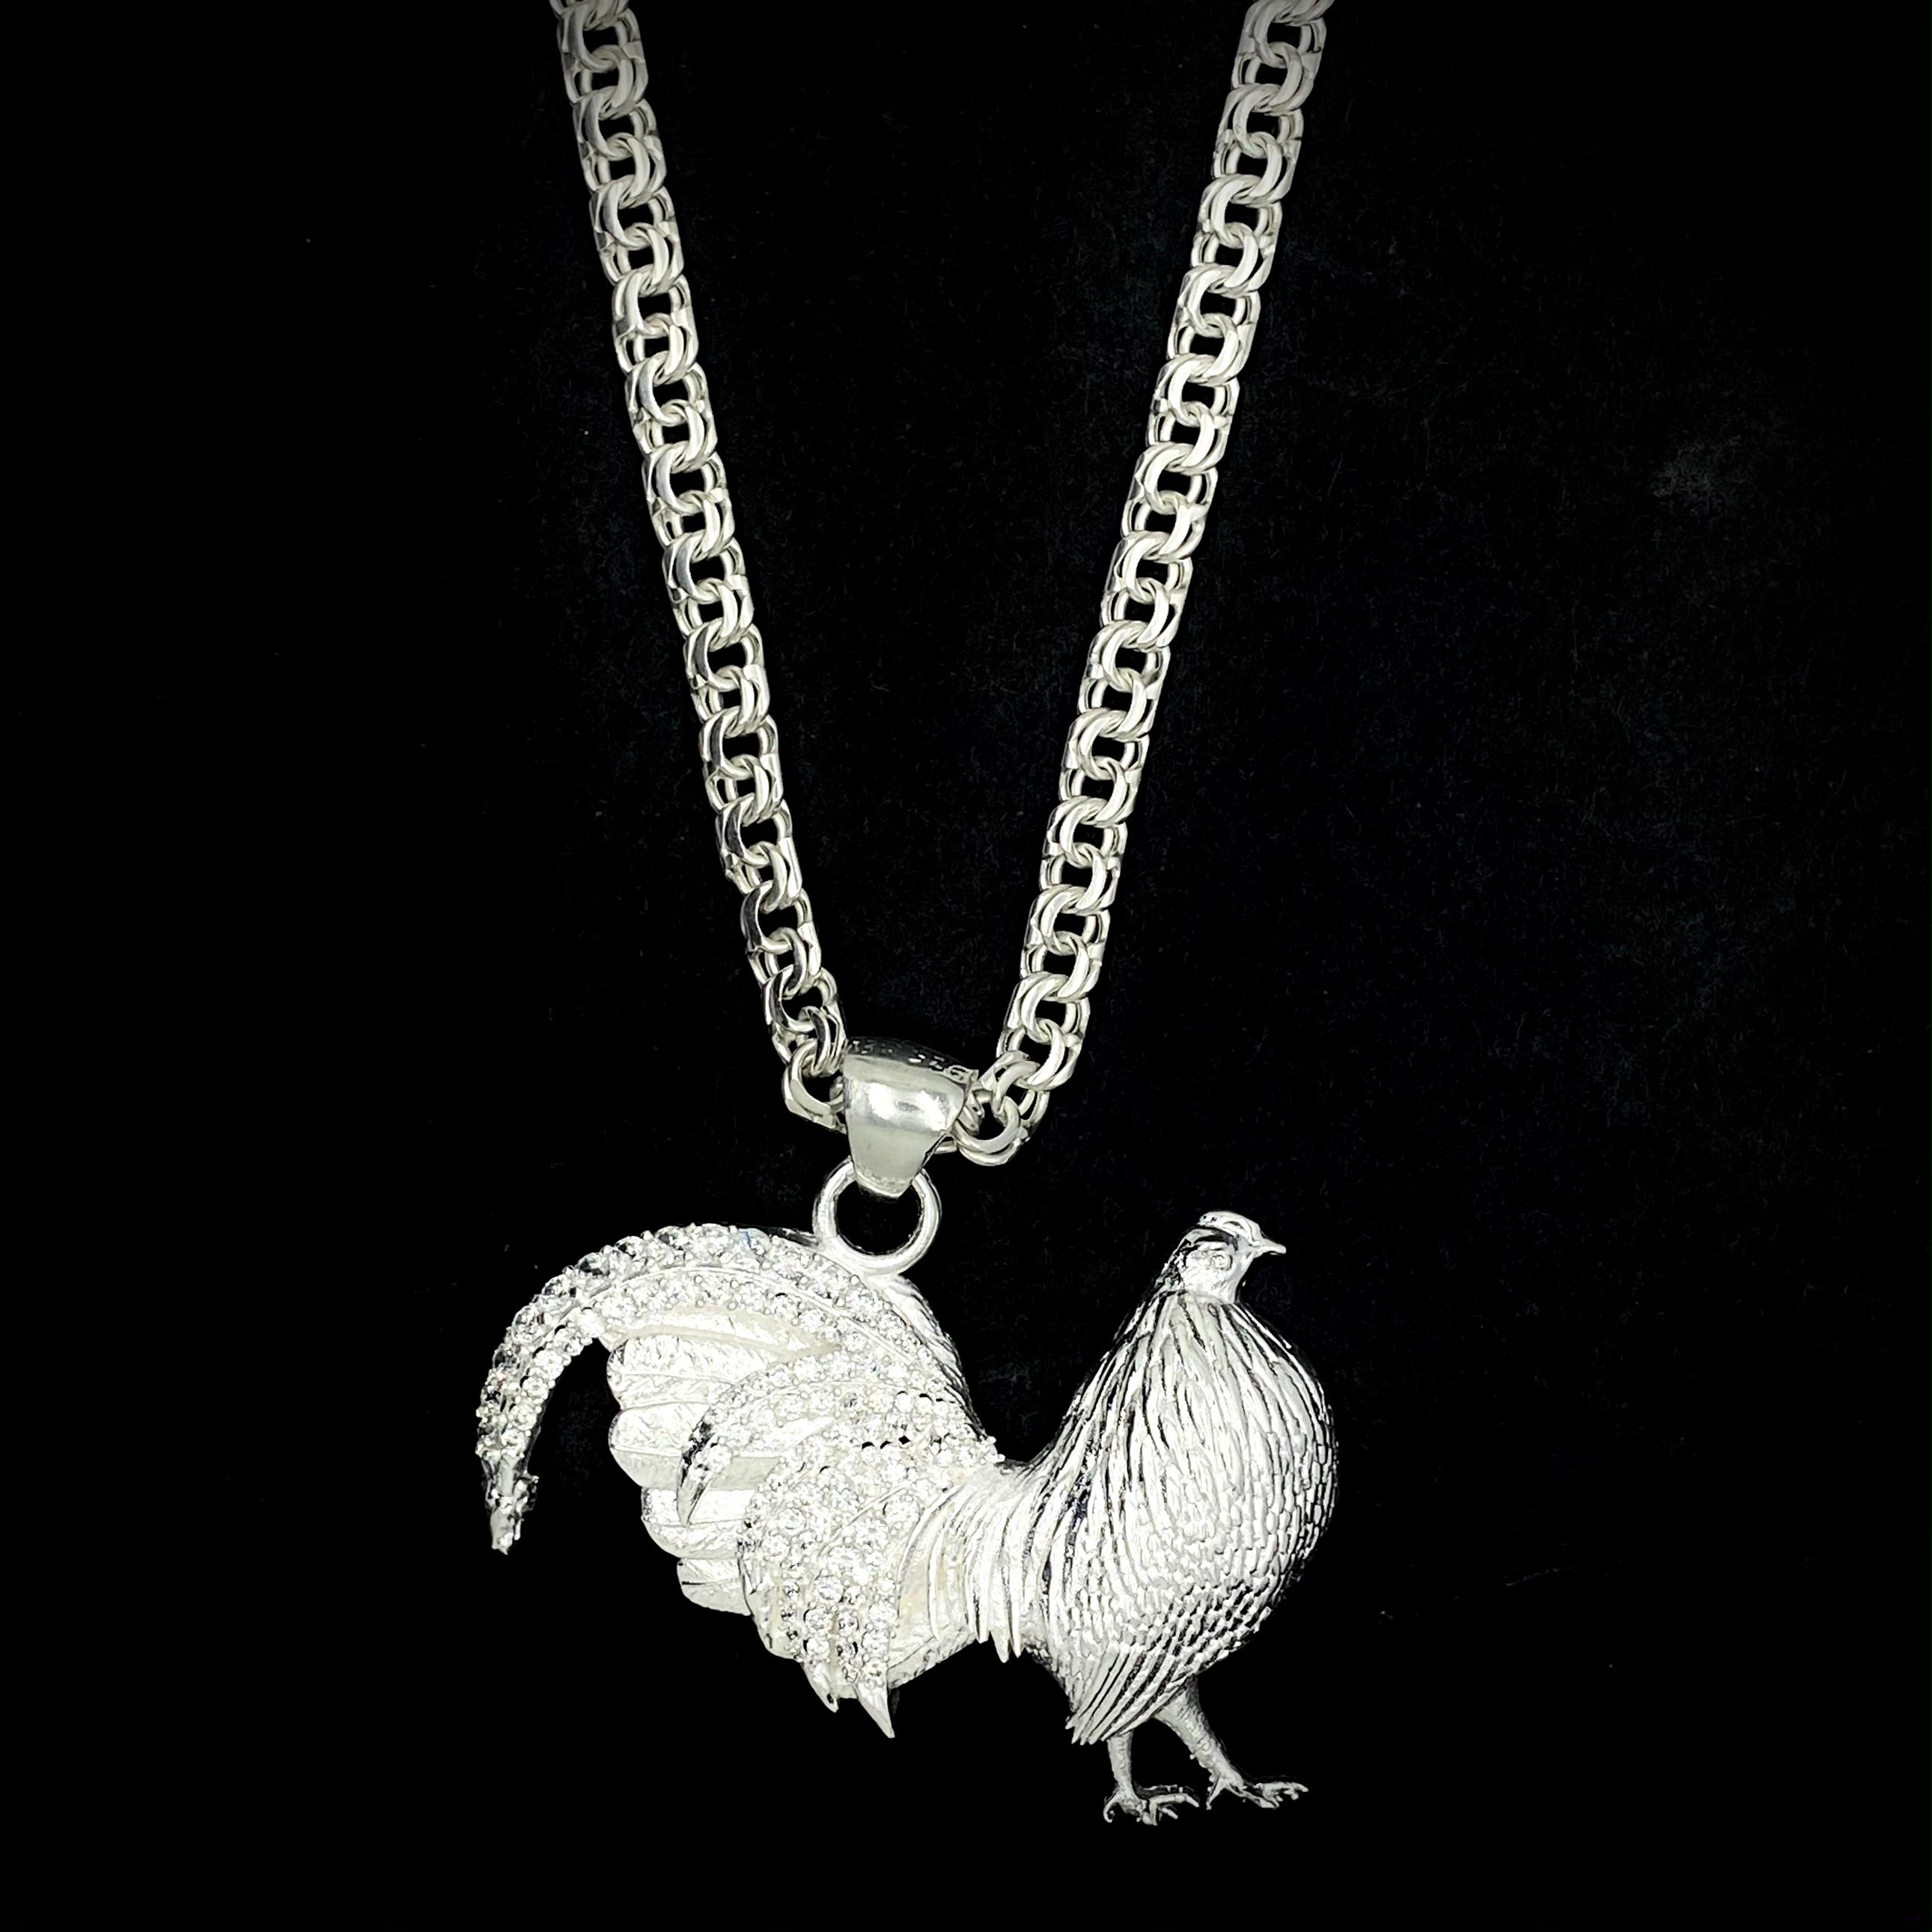 Gallo con Cadena Tejido Chino de Plata 925/Rooster Pendant with Chino Link Sterling Silver Chain